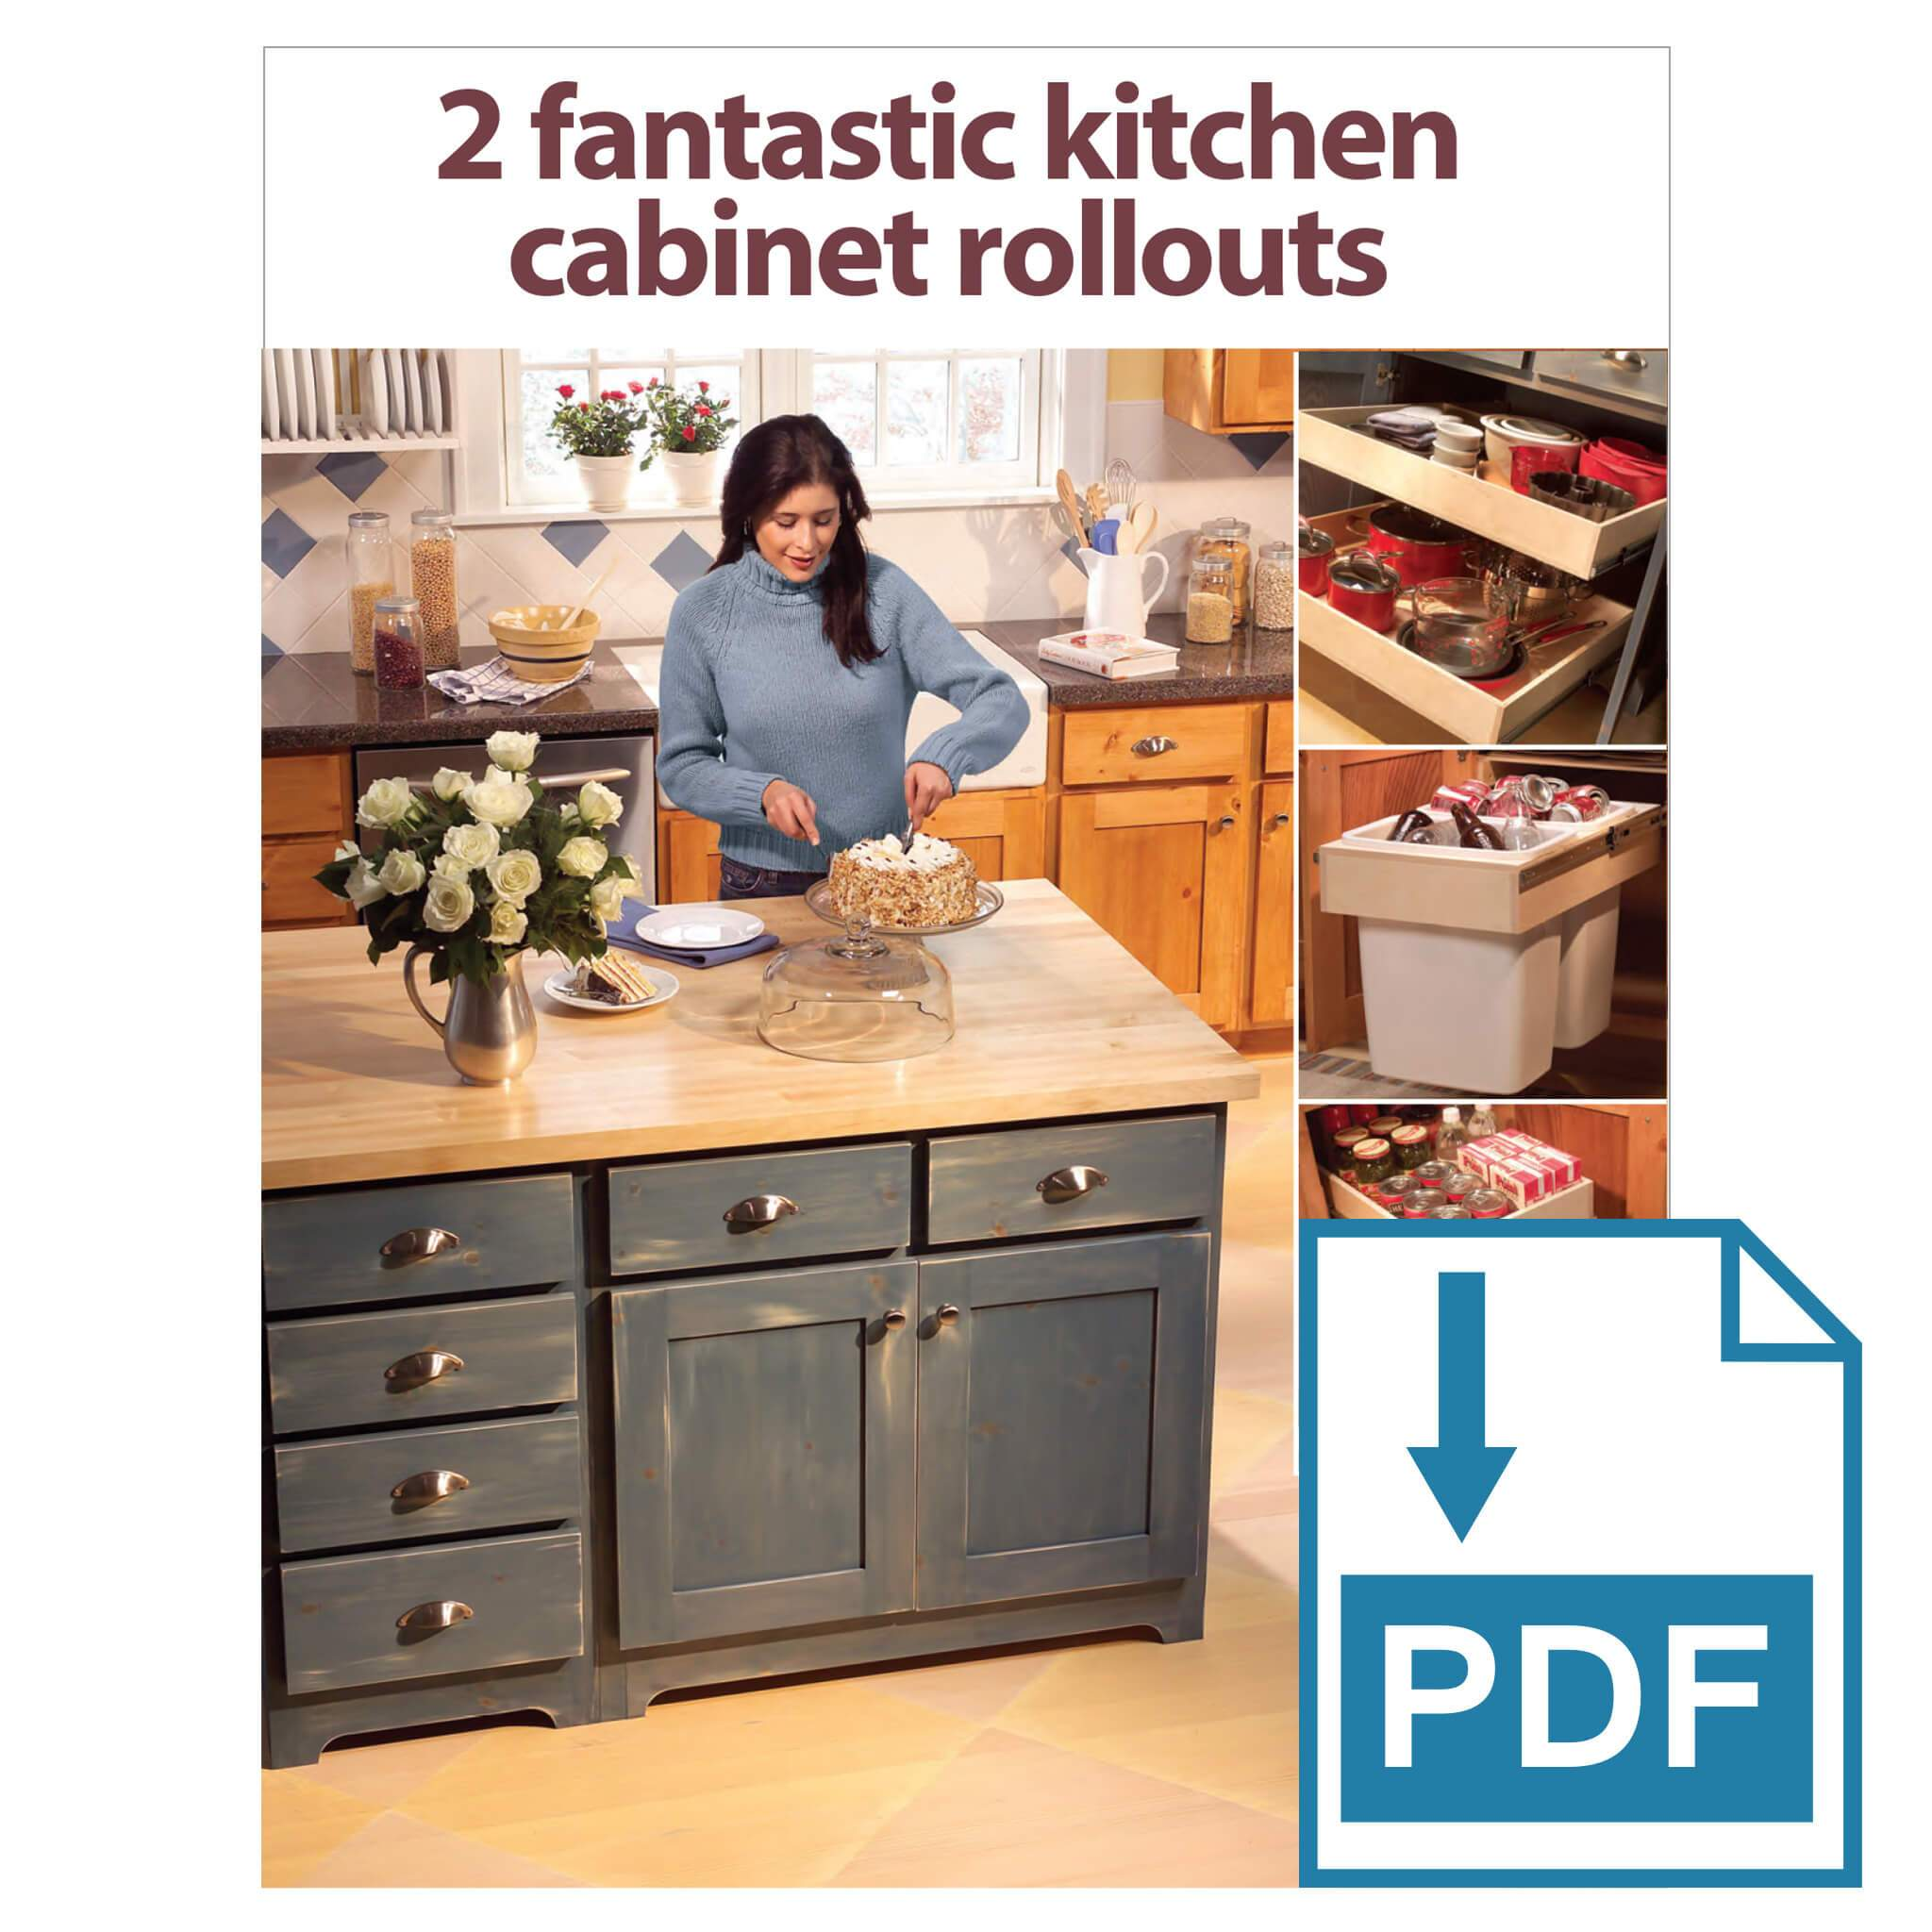 Pull Out Kitchen Shelves: Base Cabinet Rollouts - Family ...